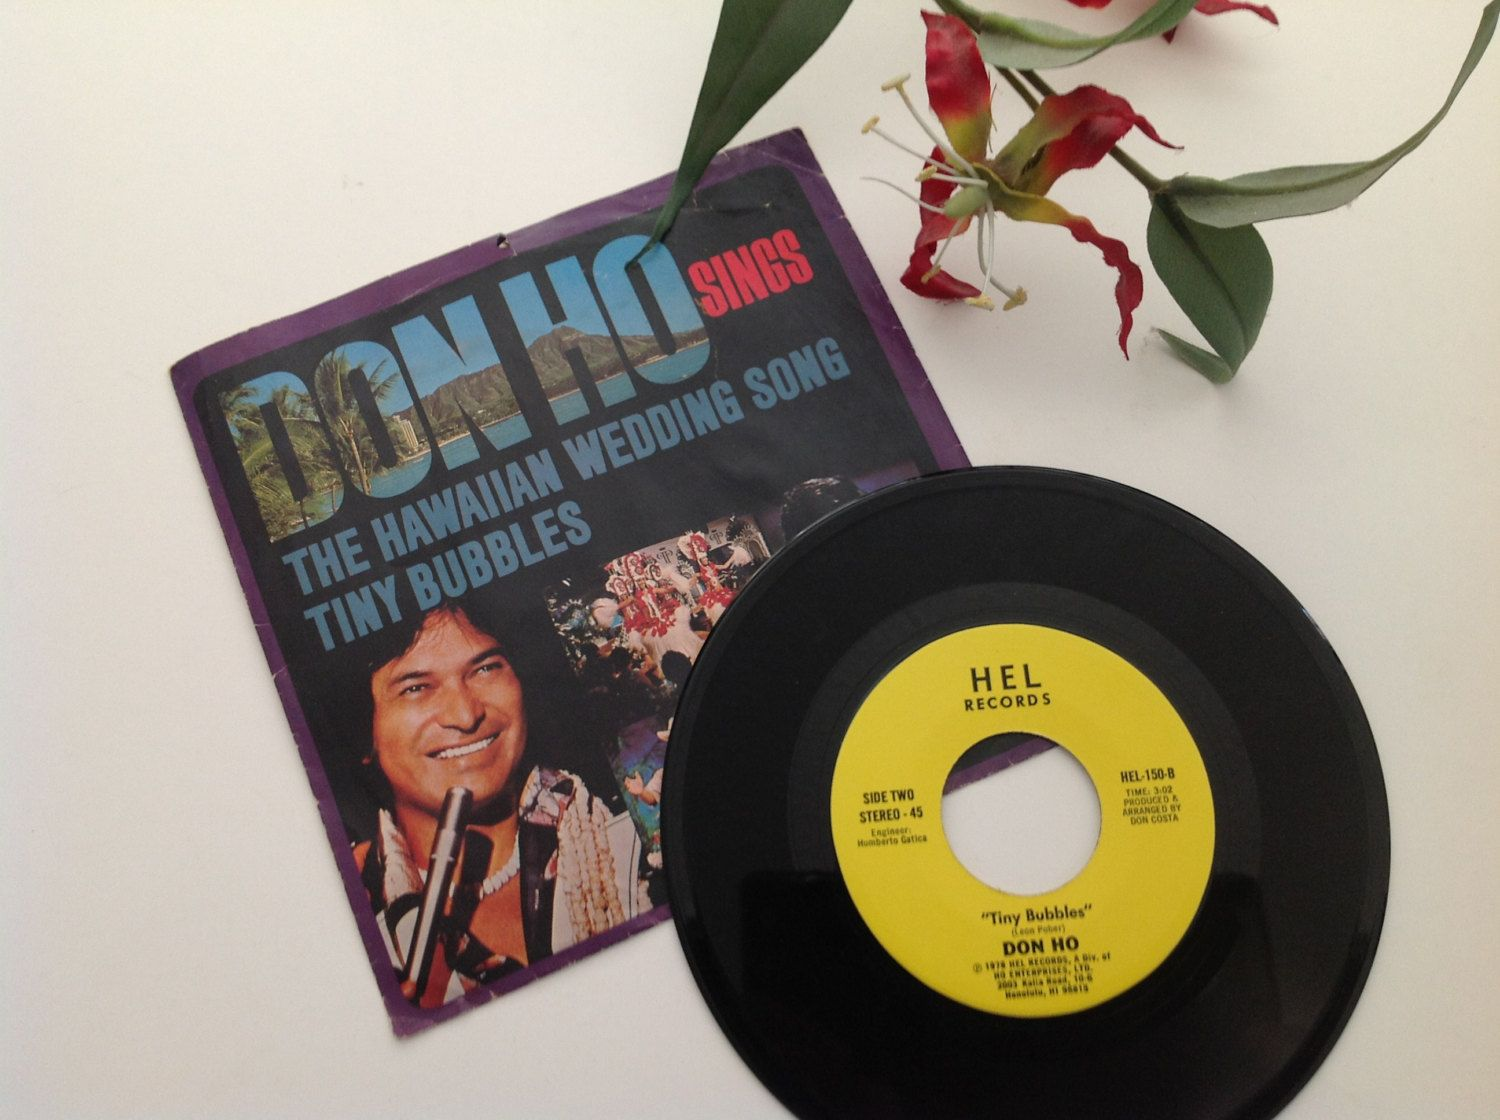 Don Ho Vintage 1978 45 Record Tiny Bubbles Hawaiian Wedding Song Vinyl